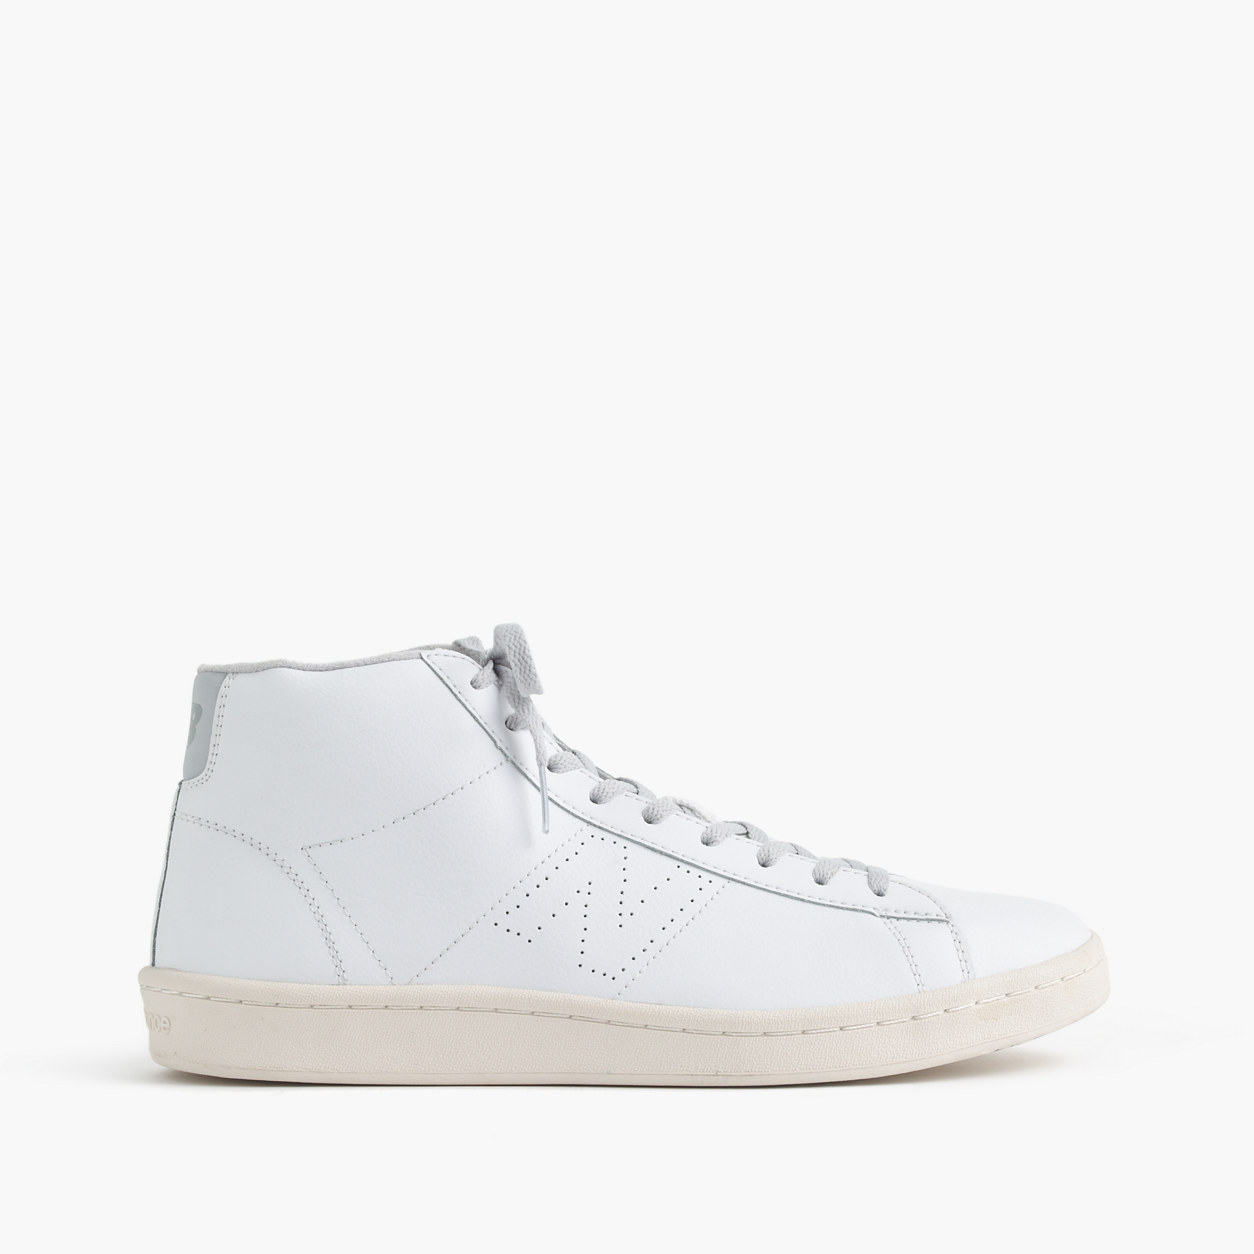 brand new 3c0dc 155c1 New Balance® for J.Crew 891 leather sneakers : sneakers | J.Crew